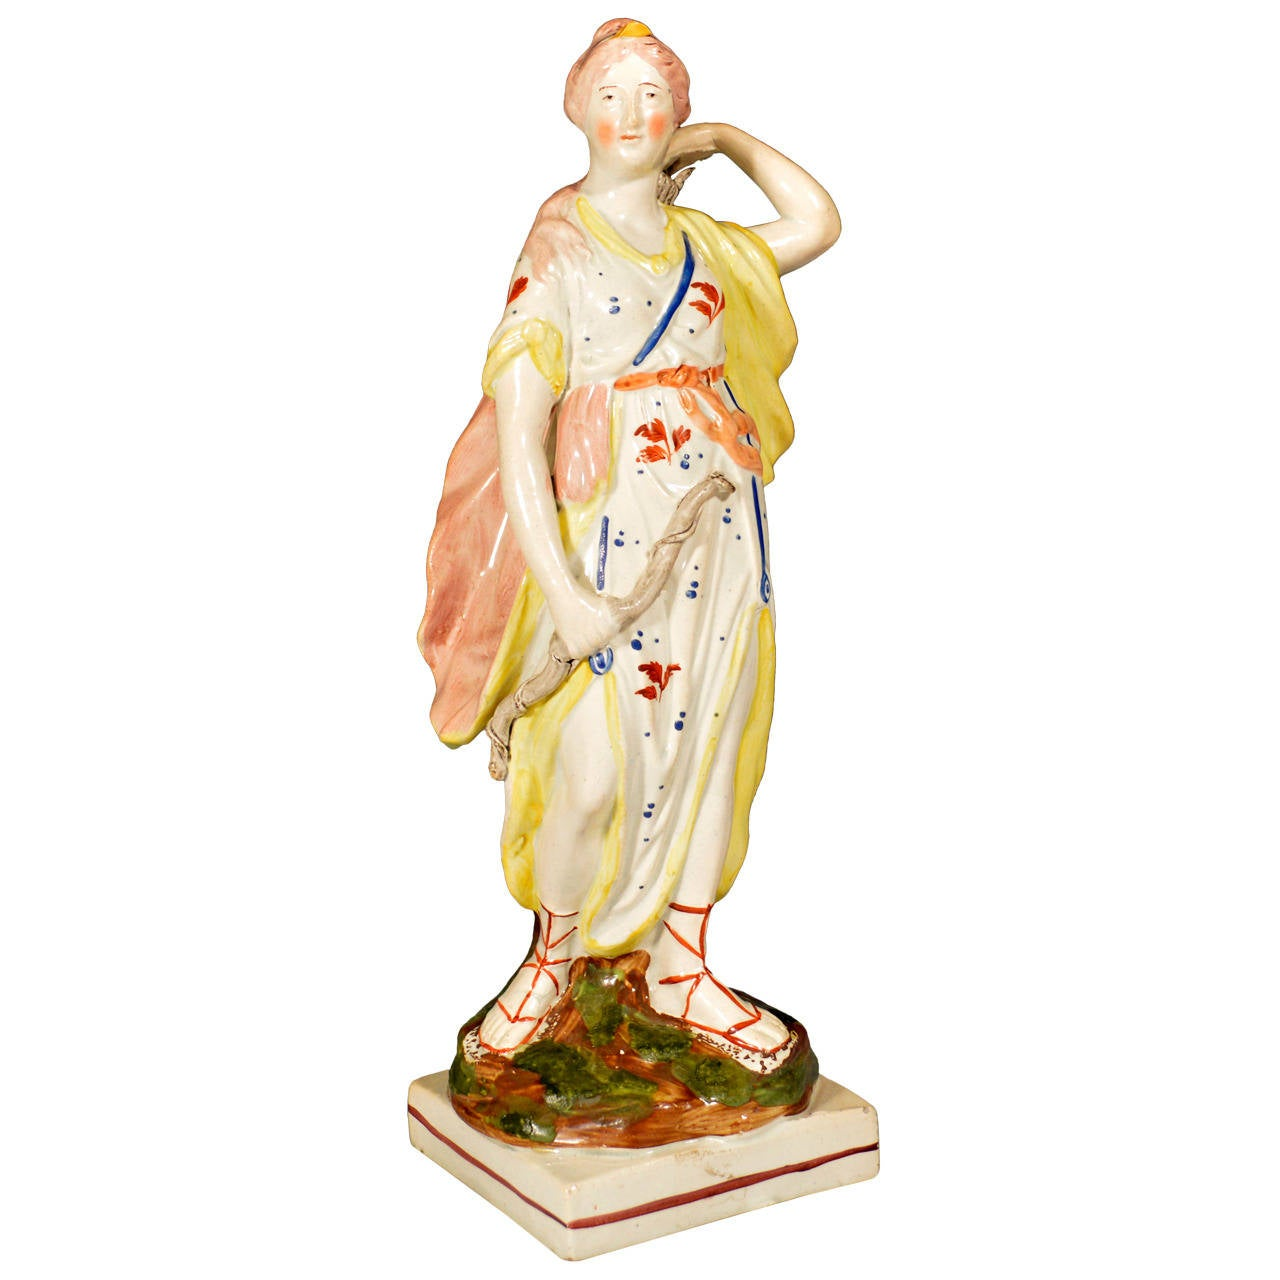 Staffordshire Pearlware Pottery Figure of Diana, Wood Family, Early 19th-century